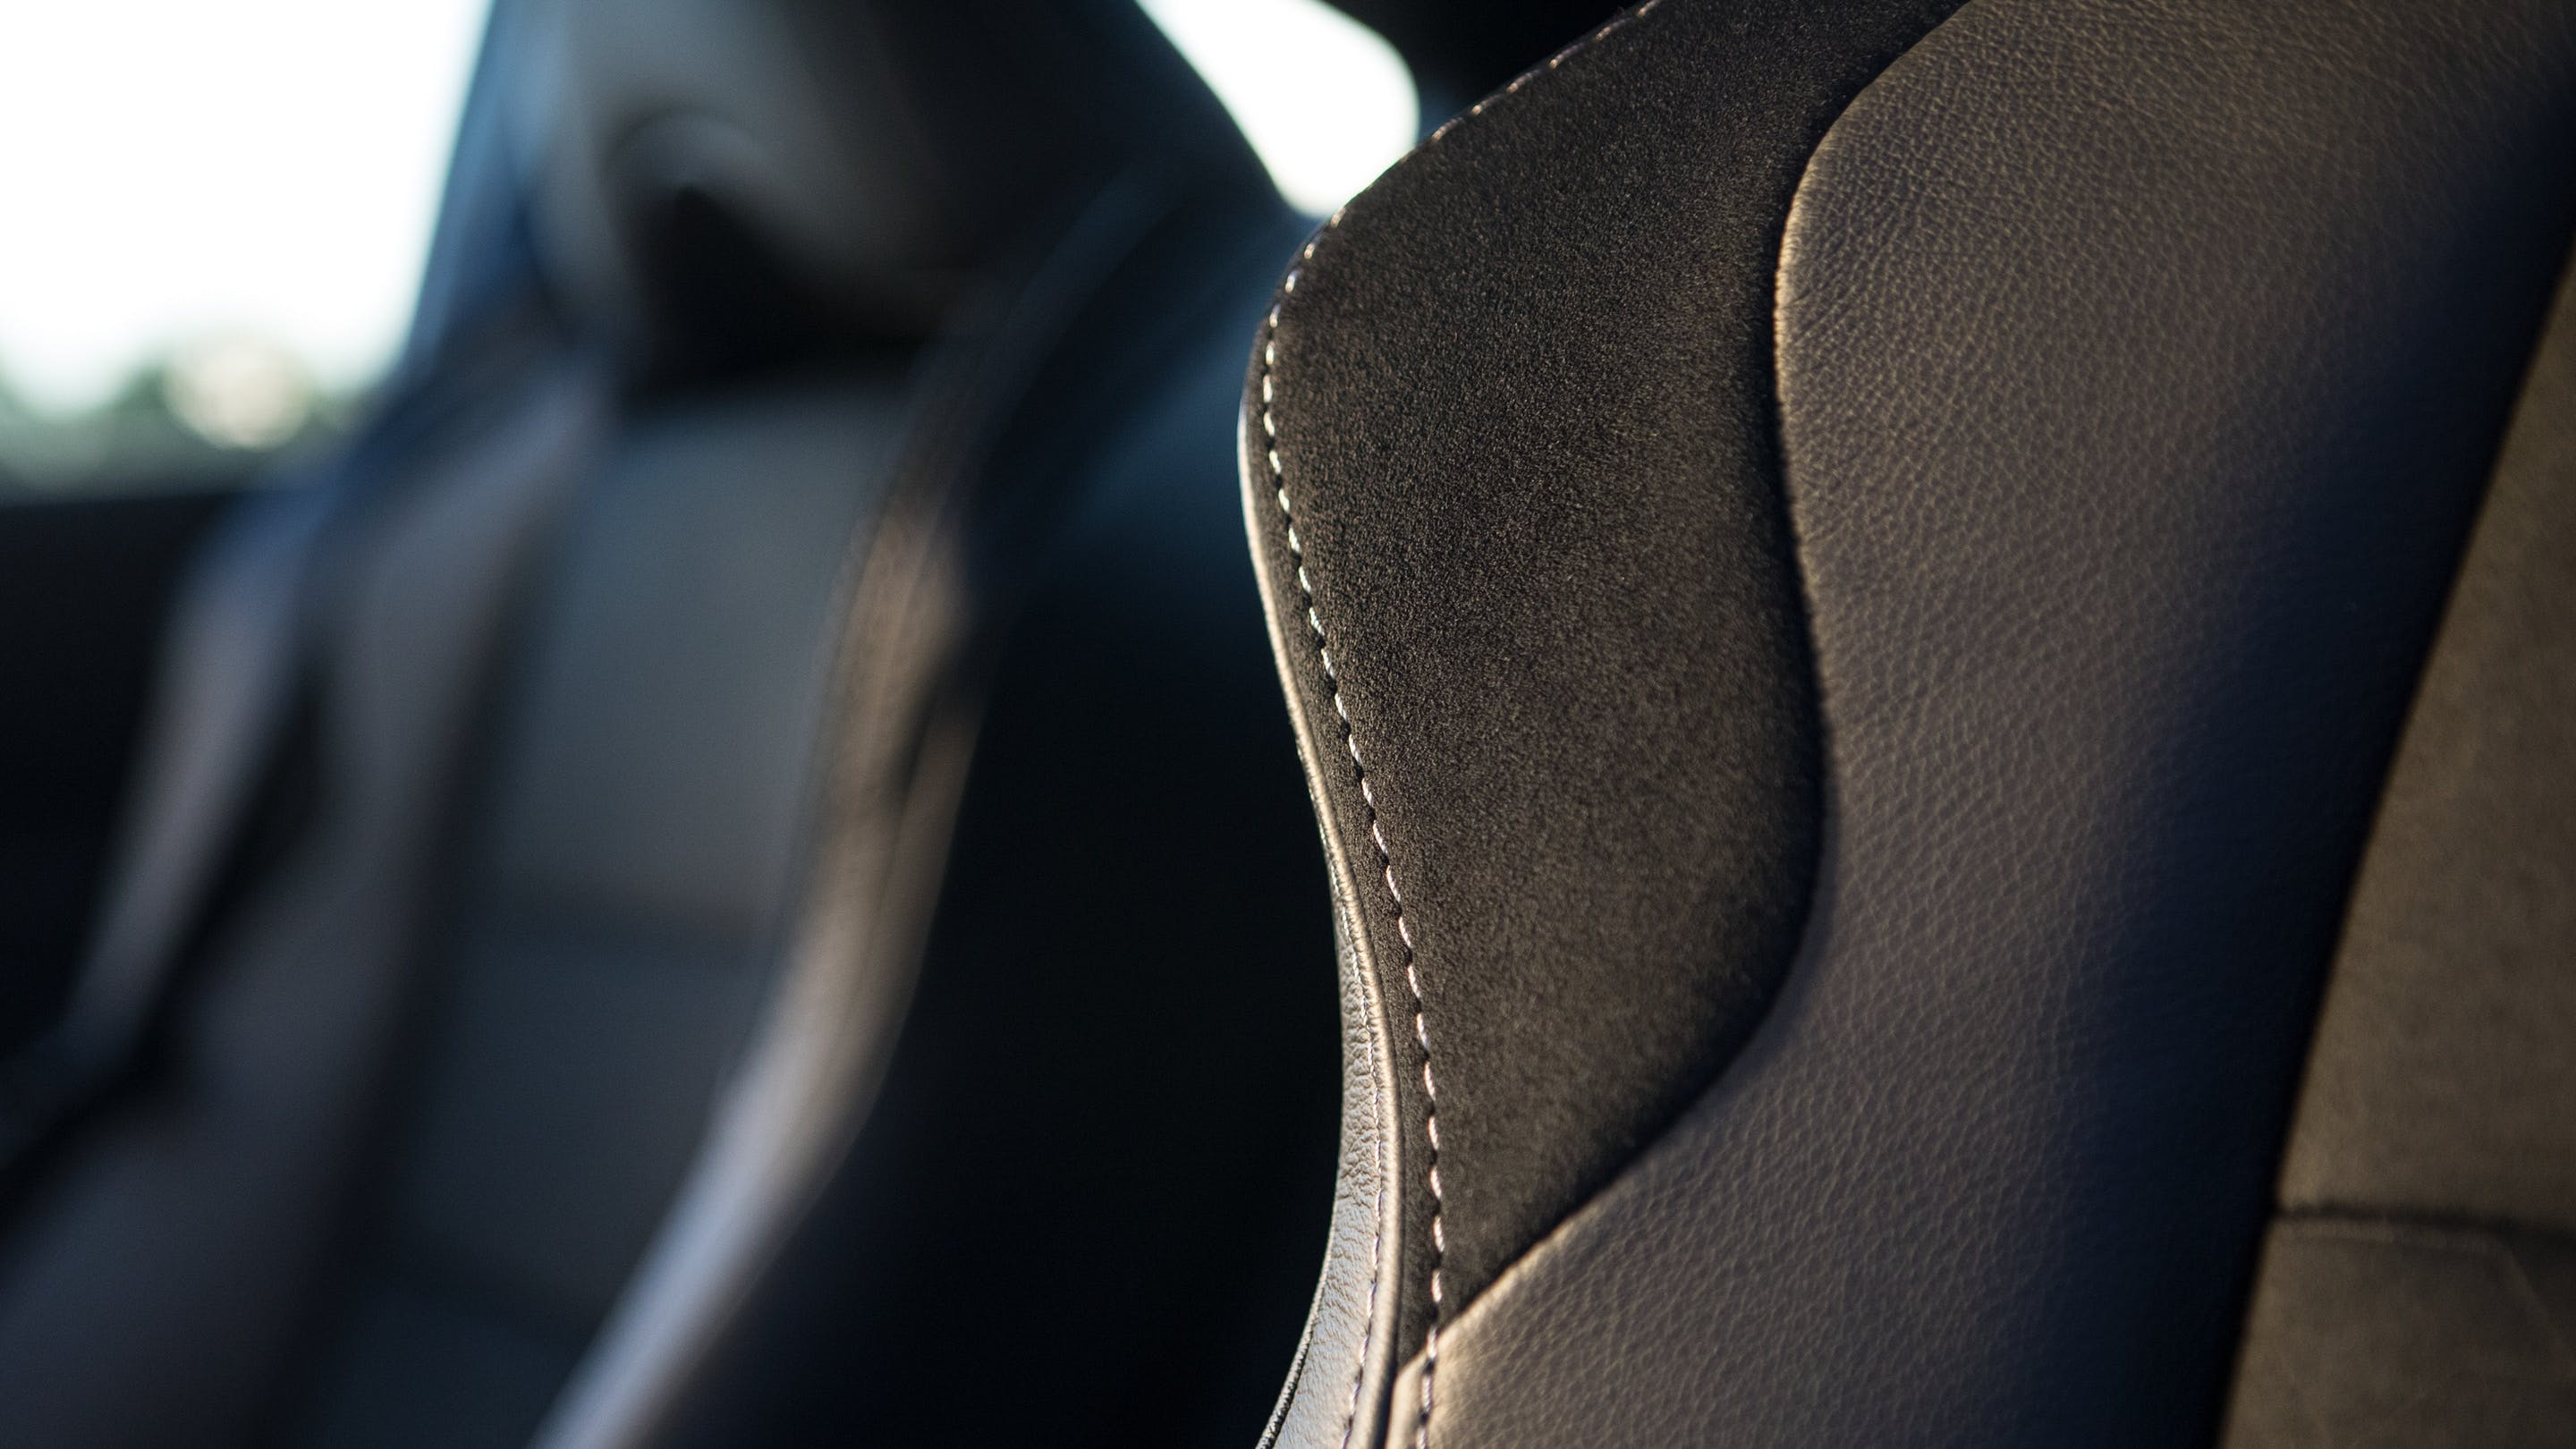 SPORT SEATS WITH SILVER CONTRAST STITCHING